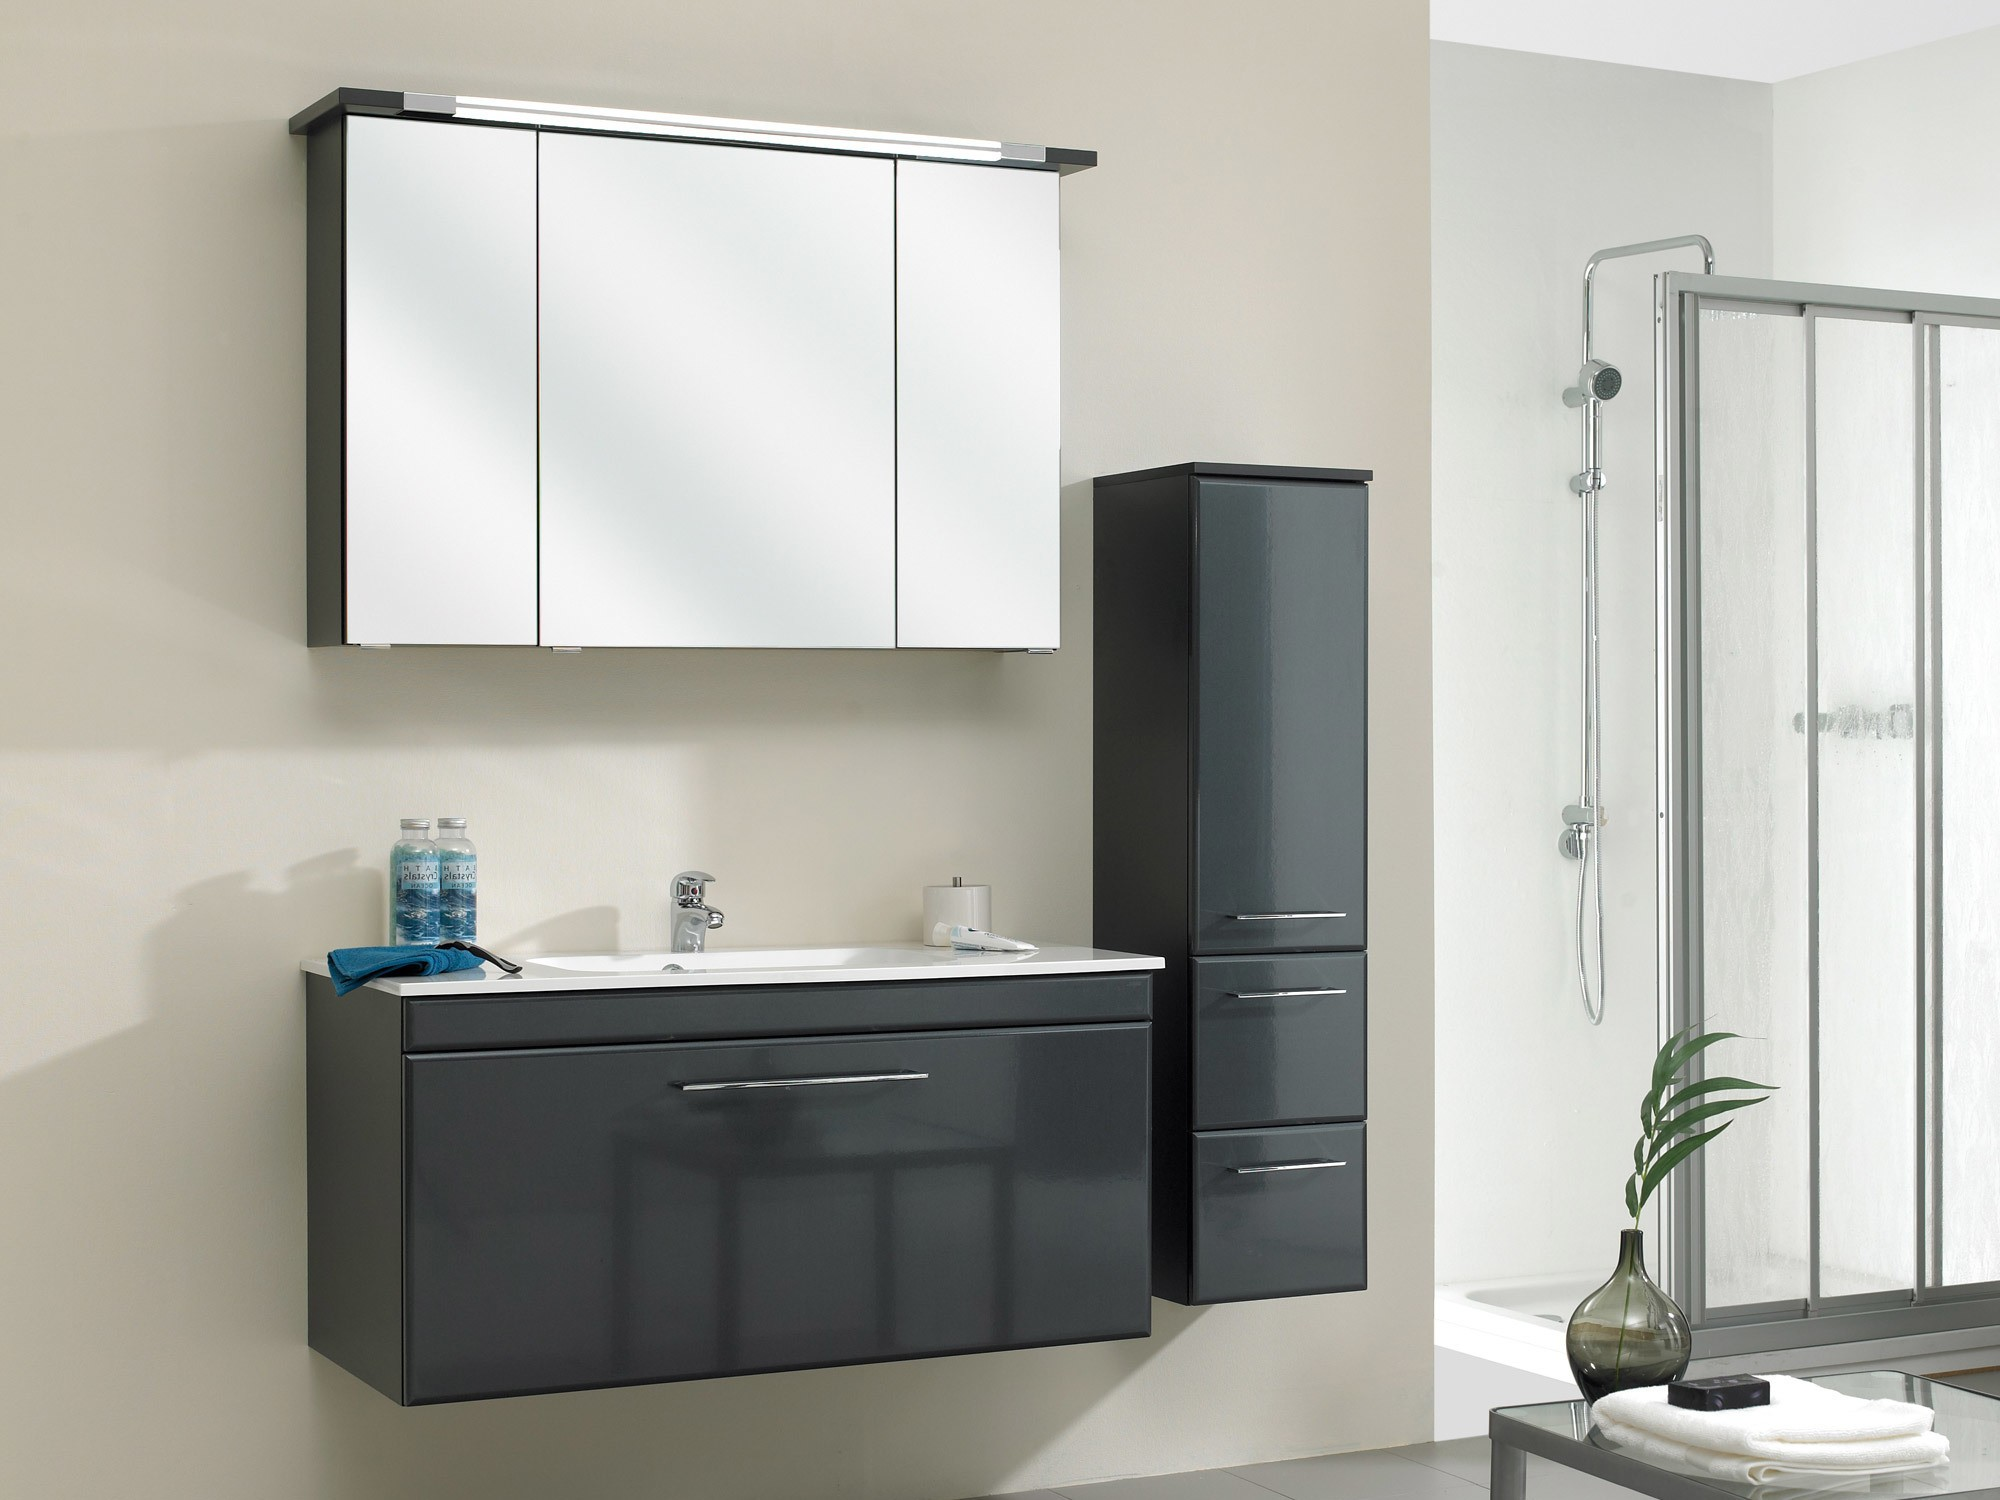 armoire de toilette miroir avec eclairage 21531 armoire id es. Black Bedroom Furniture Sets. Home Design Ideas